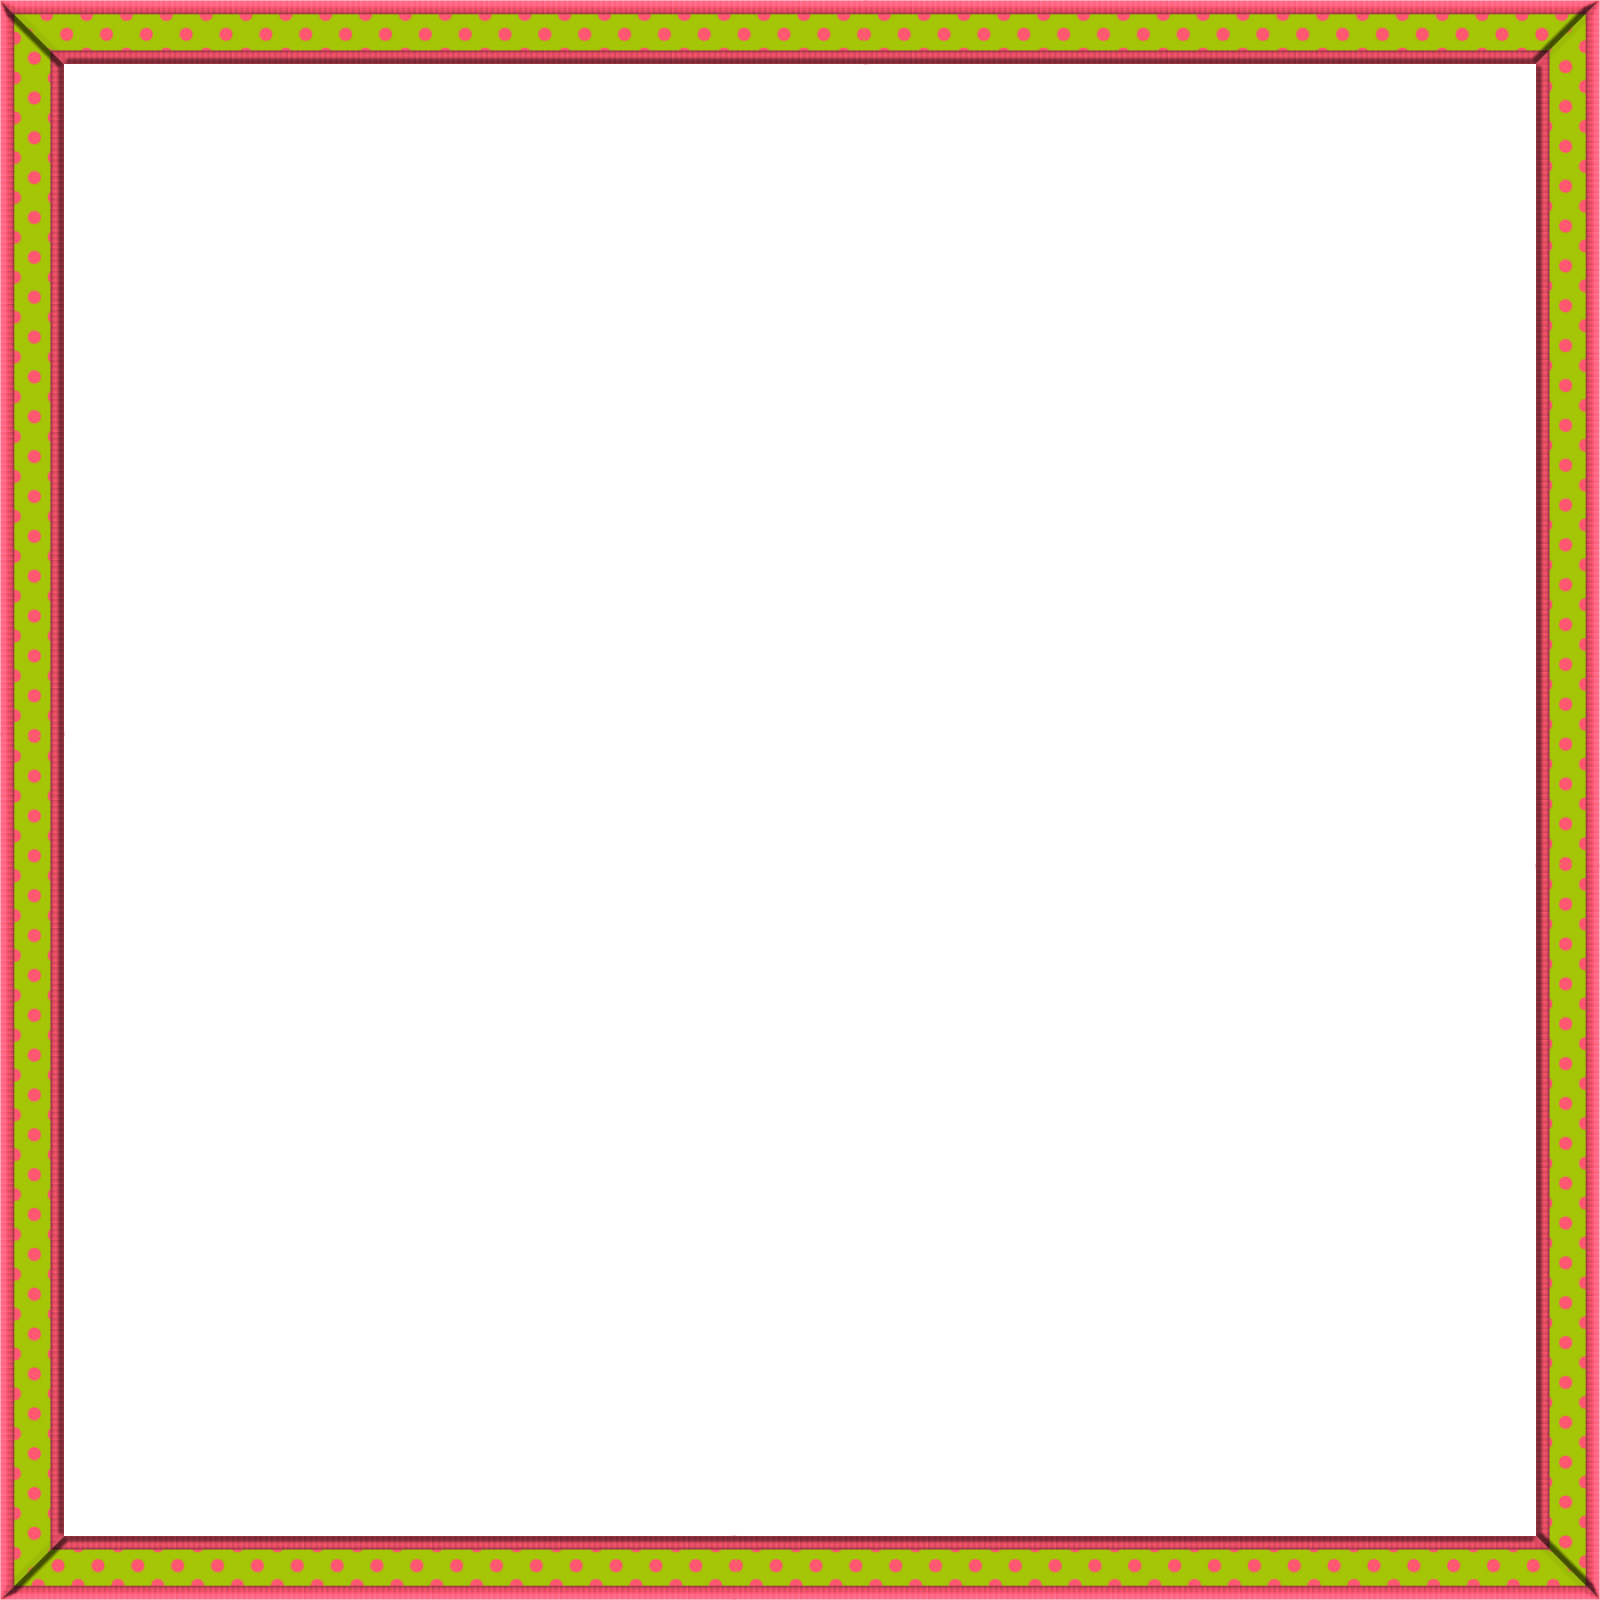 Png borders and frames. Sweet thin border free